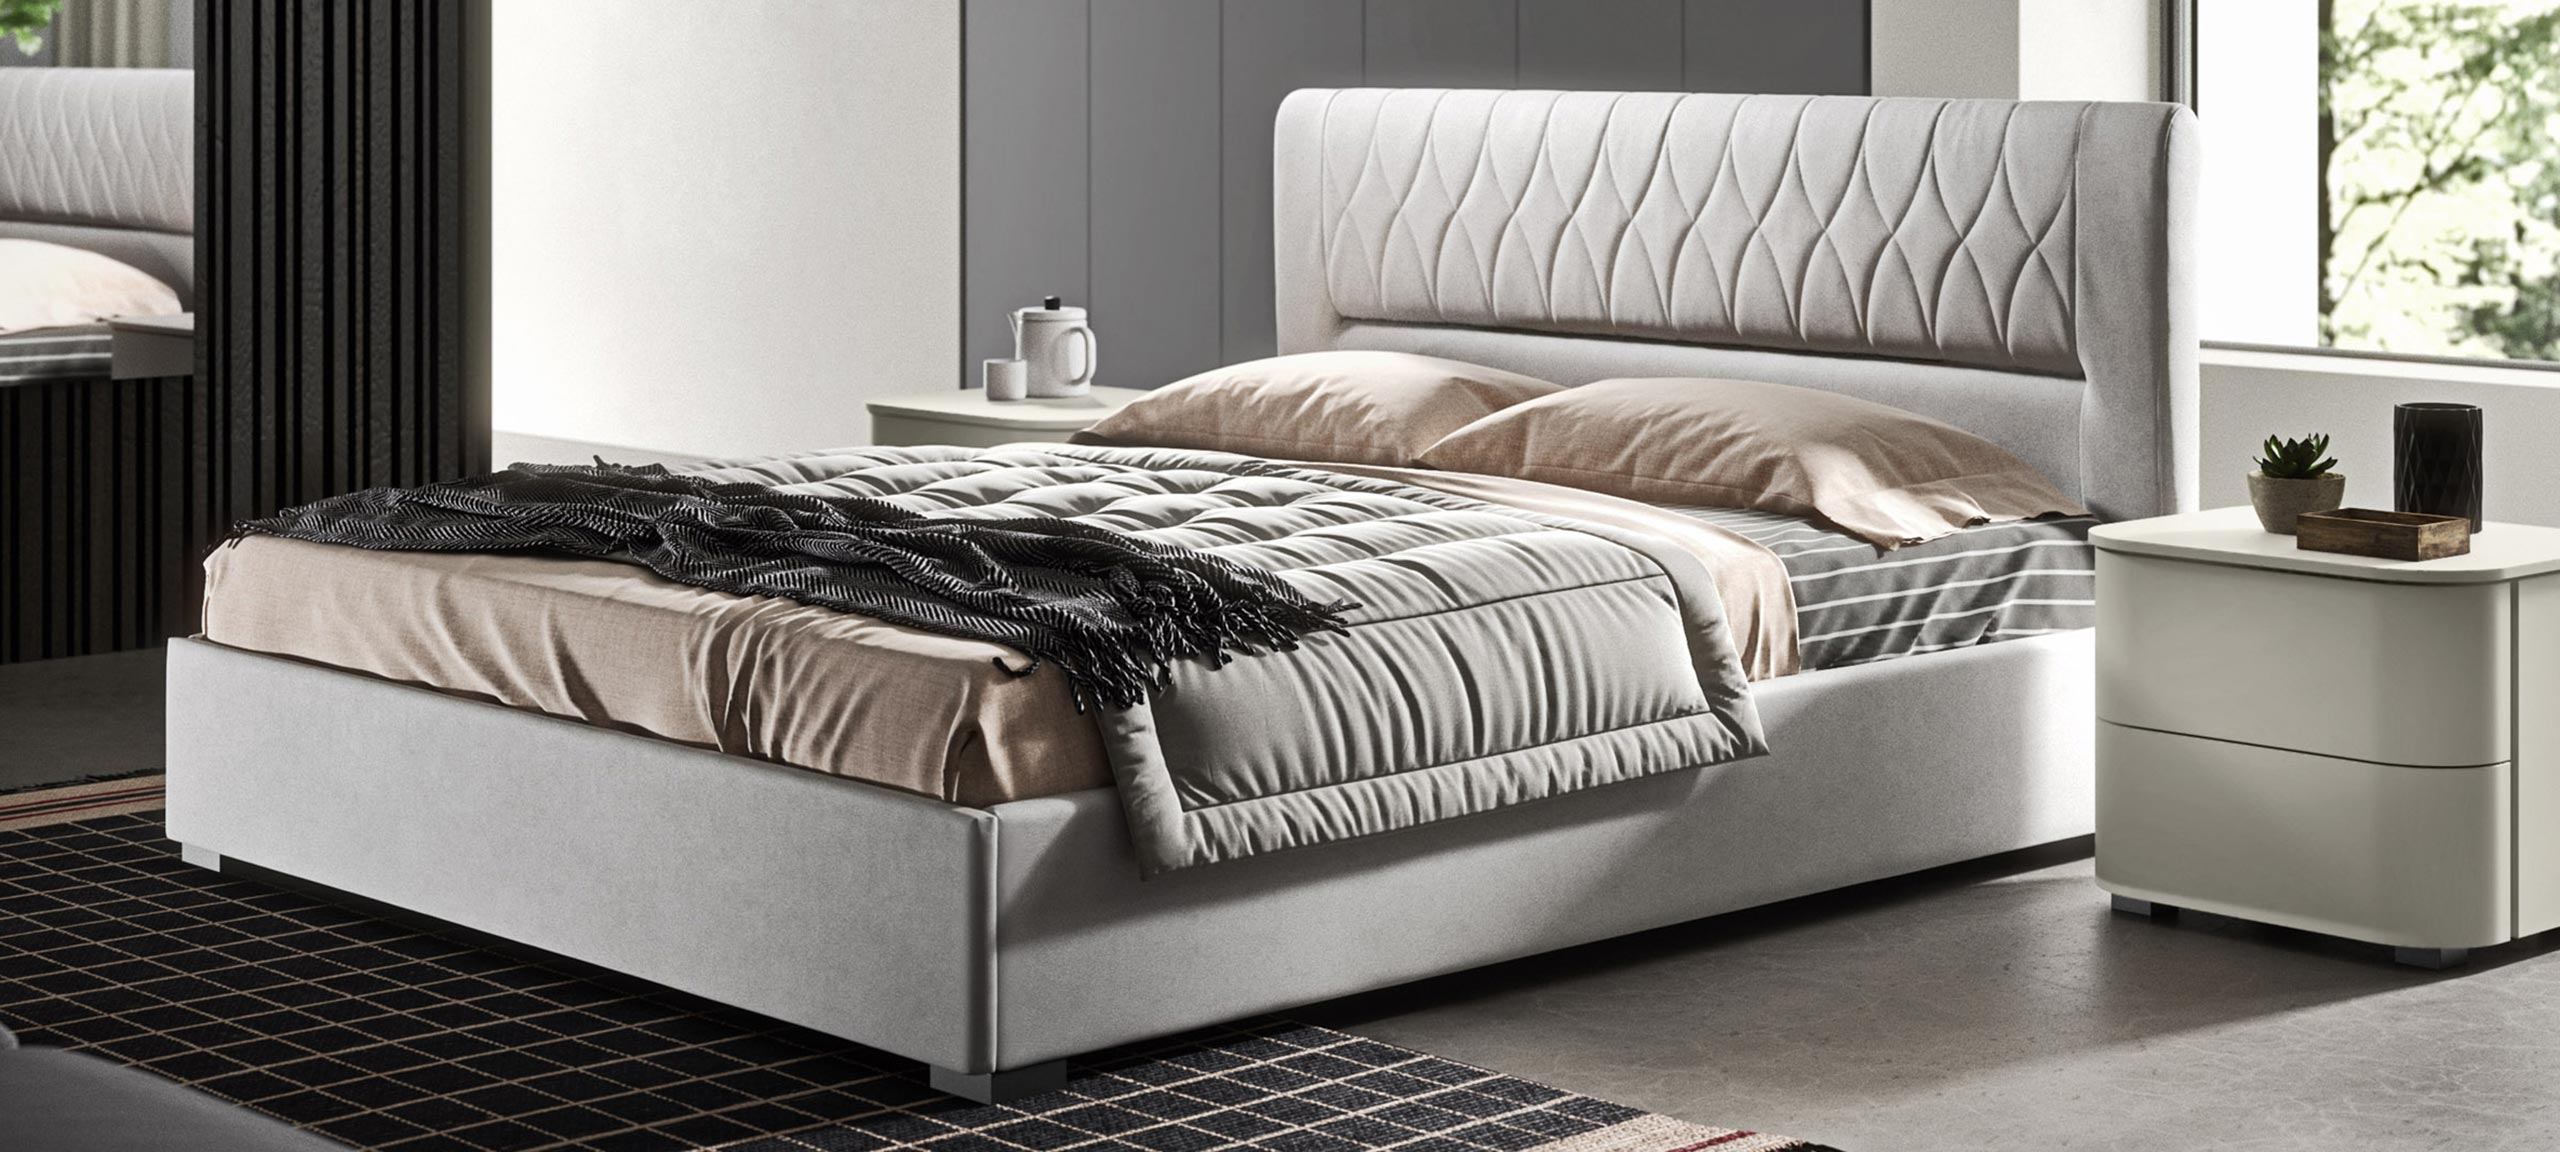 faux leather double bed with container 1